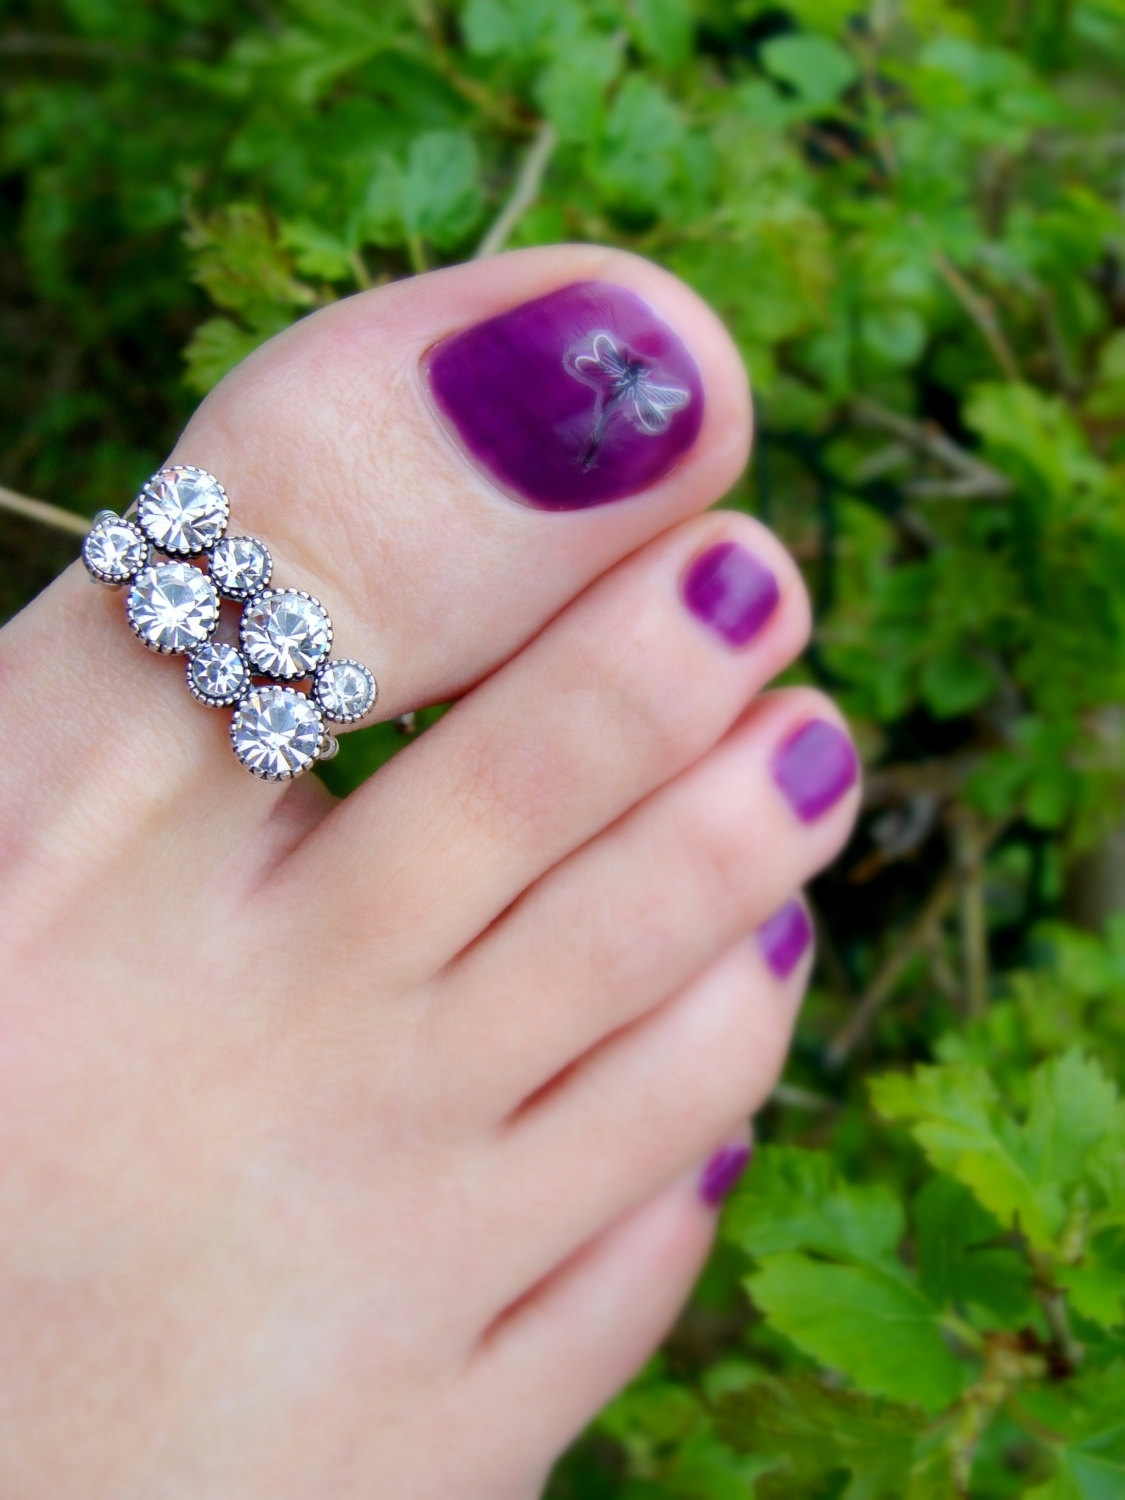 Beautiful Toes Rings | Pazeb & Slippers | Pinterest | Toe Rings In Most Up To Date Big Toe Rings (View 3 of 15)